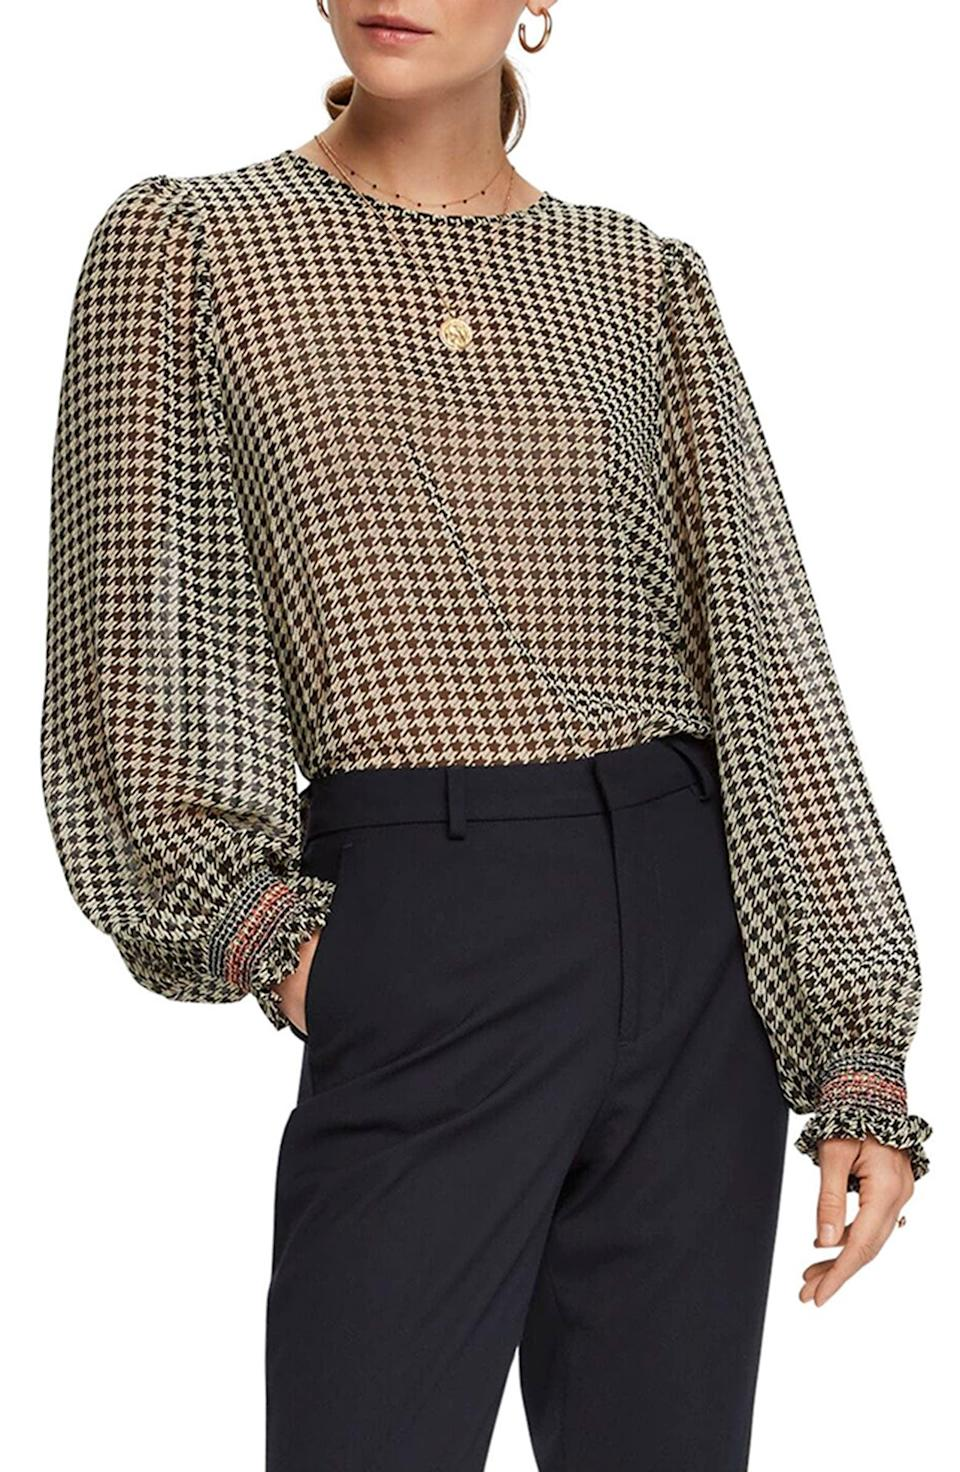 <p>This <span>Scotch & Soda Houndstooth Balloon Sleeve Top</span> ($115) adds an instant touch of glam to any look.</p>